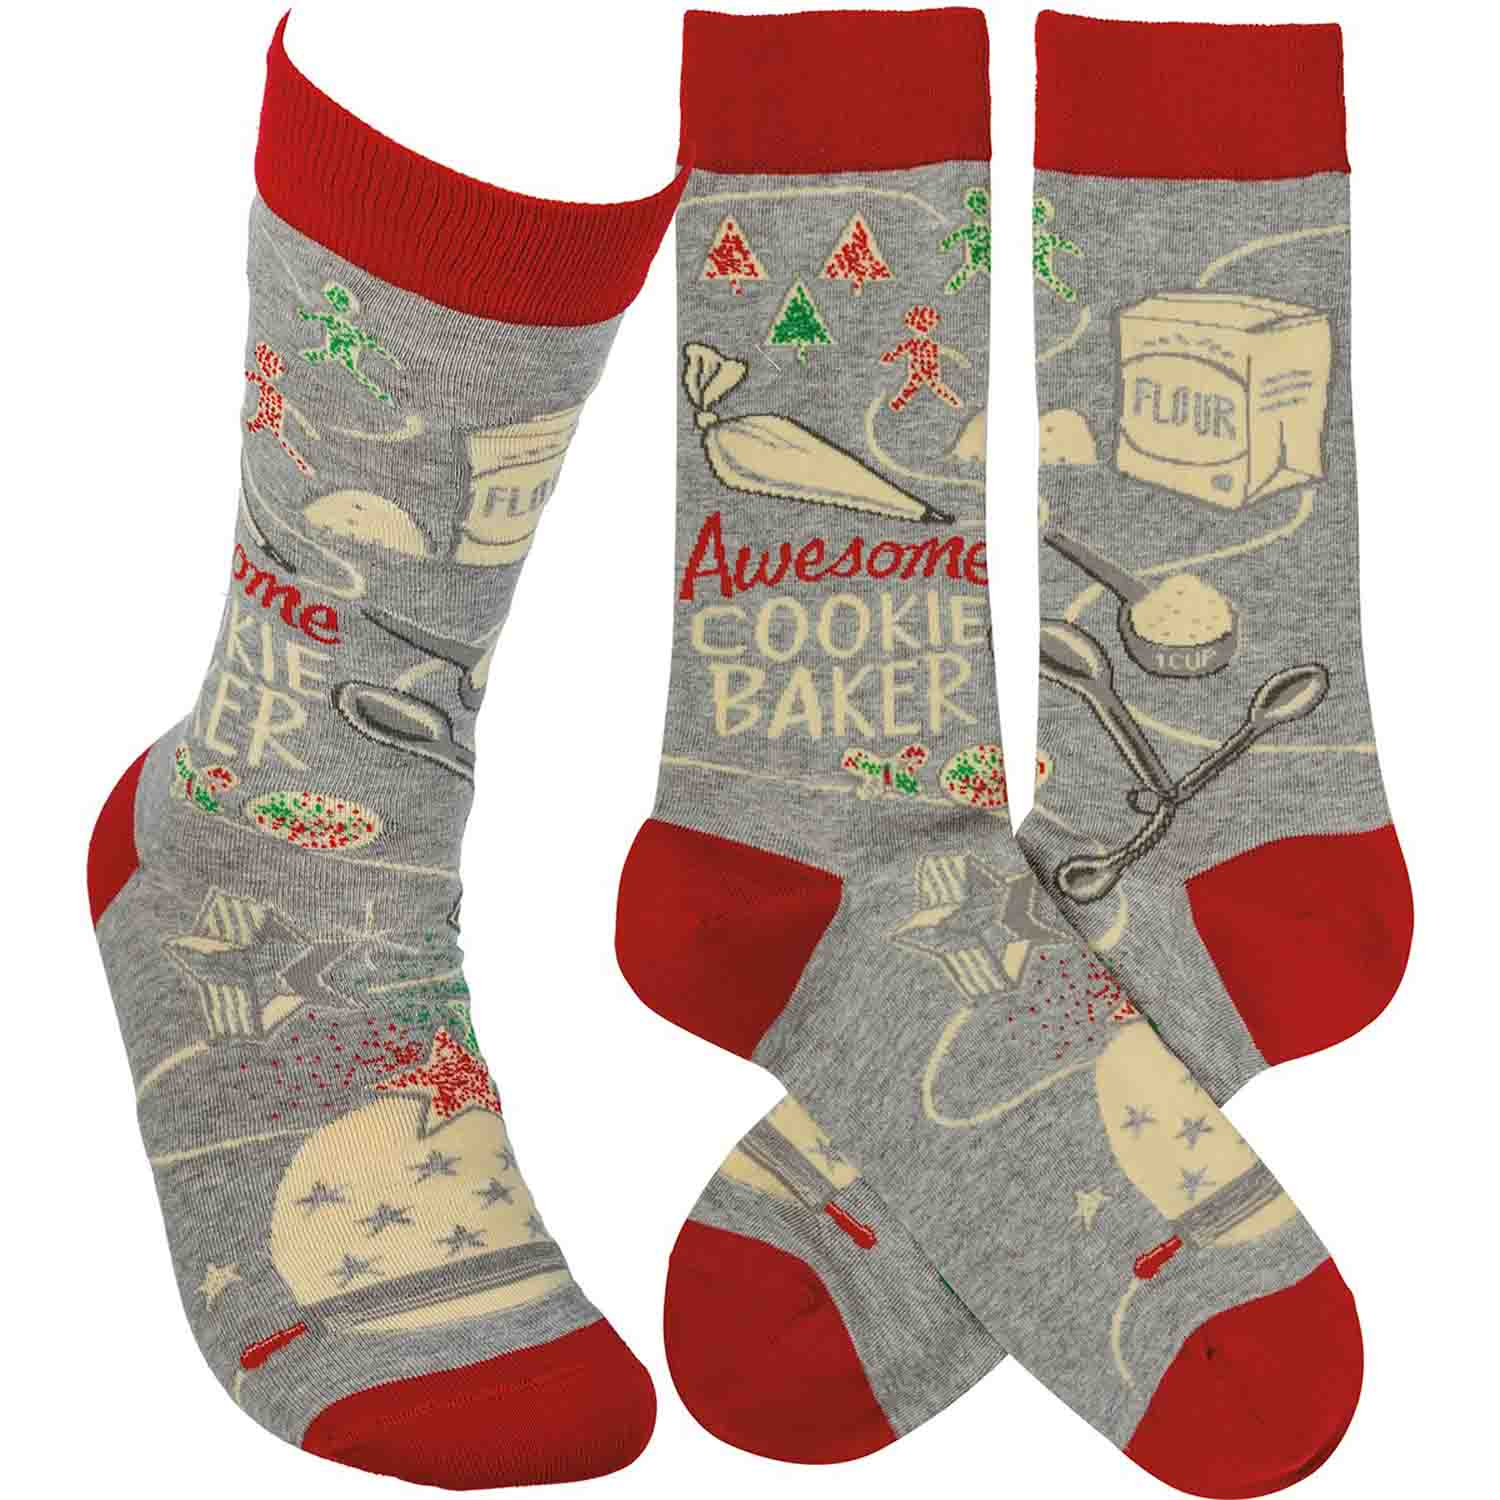 Awesome Cookie Baker Socks